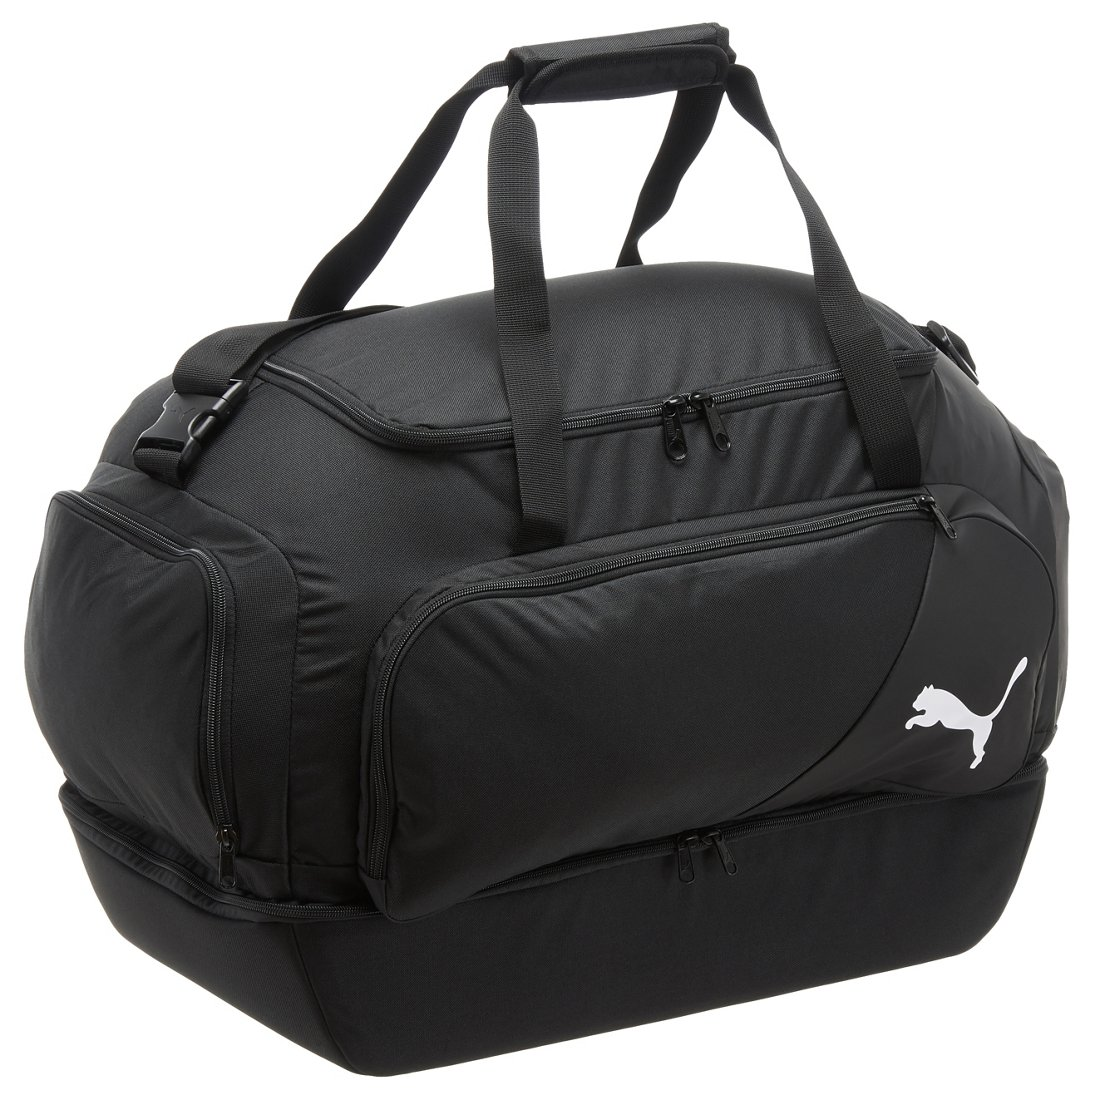 63be9b1ba4 Puma Liga Football Bag 59 cm - koffer-direkt.de